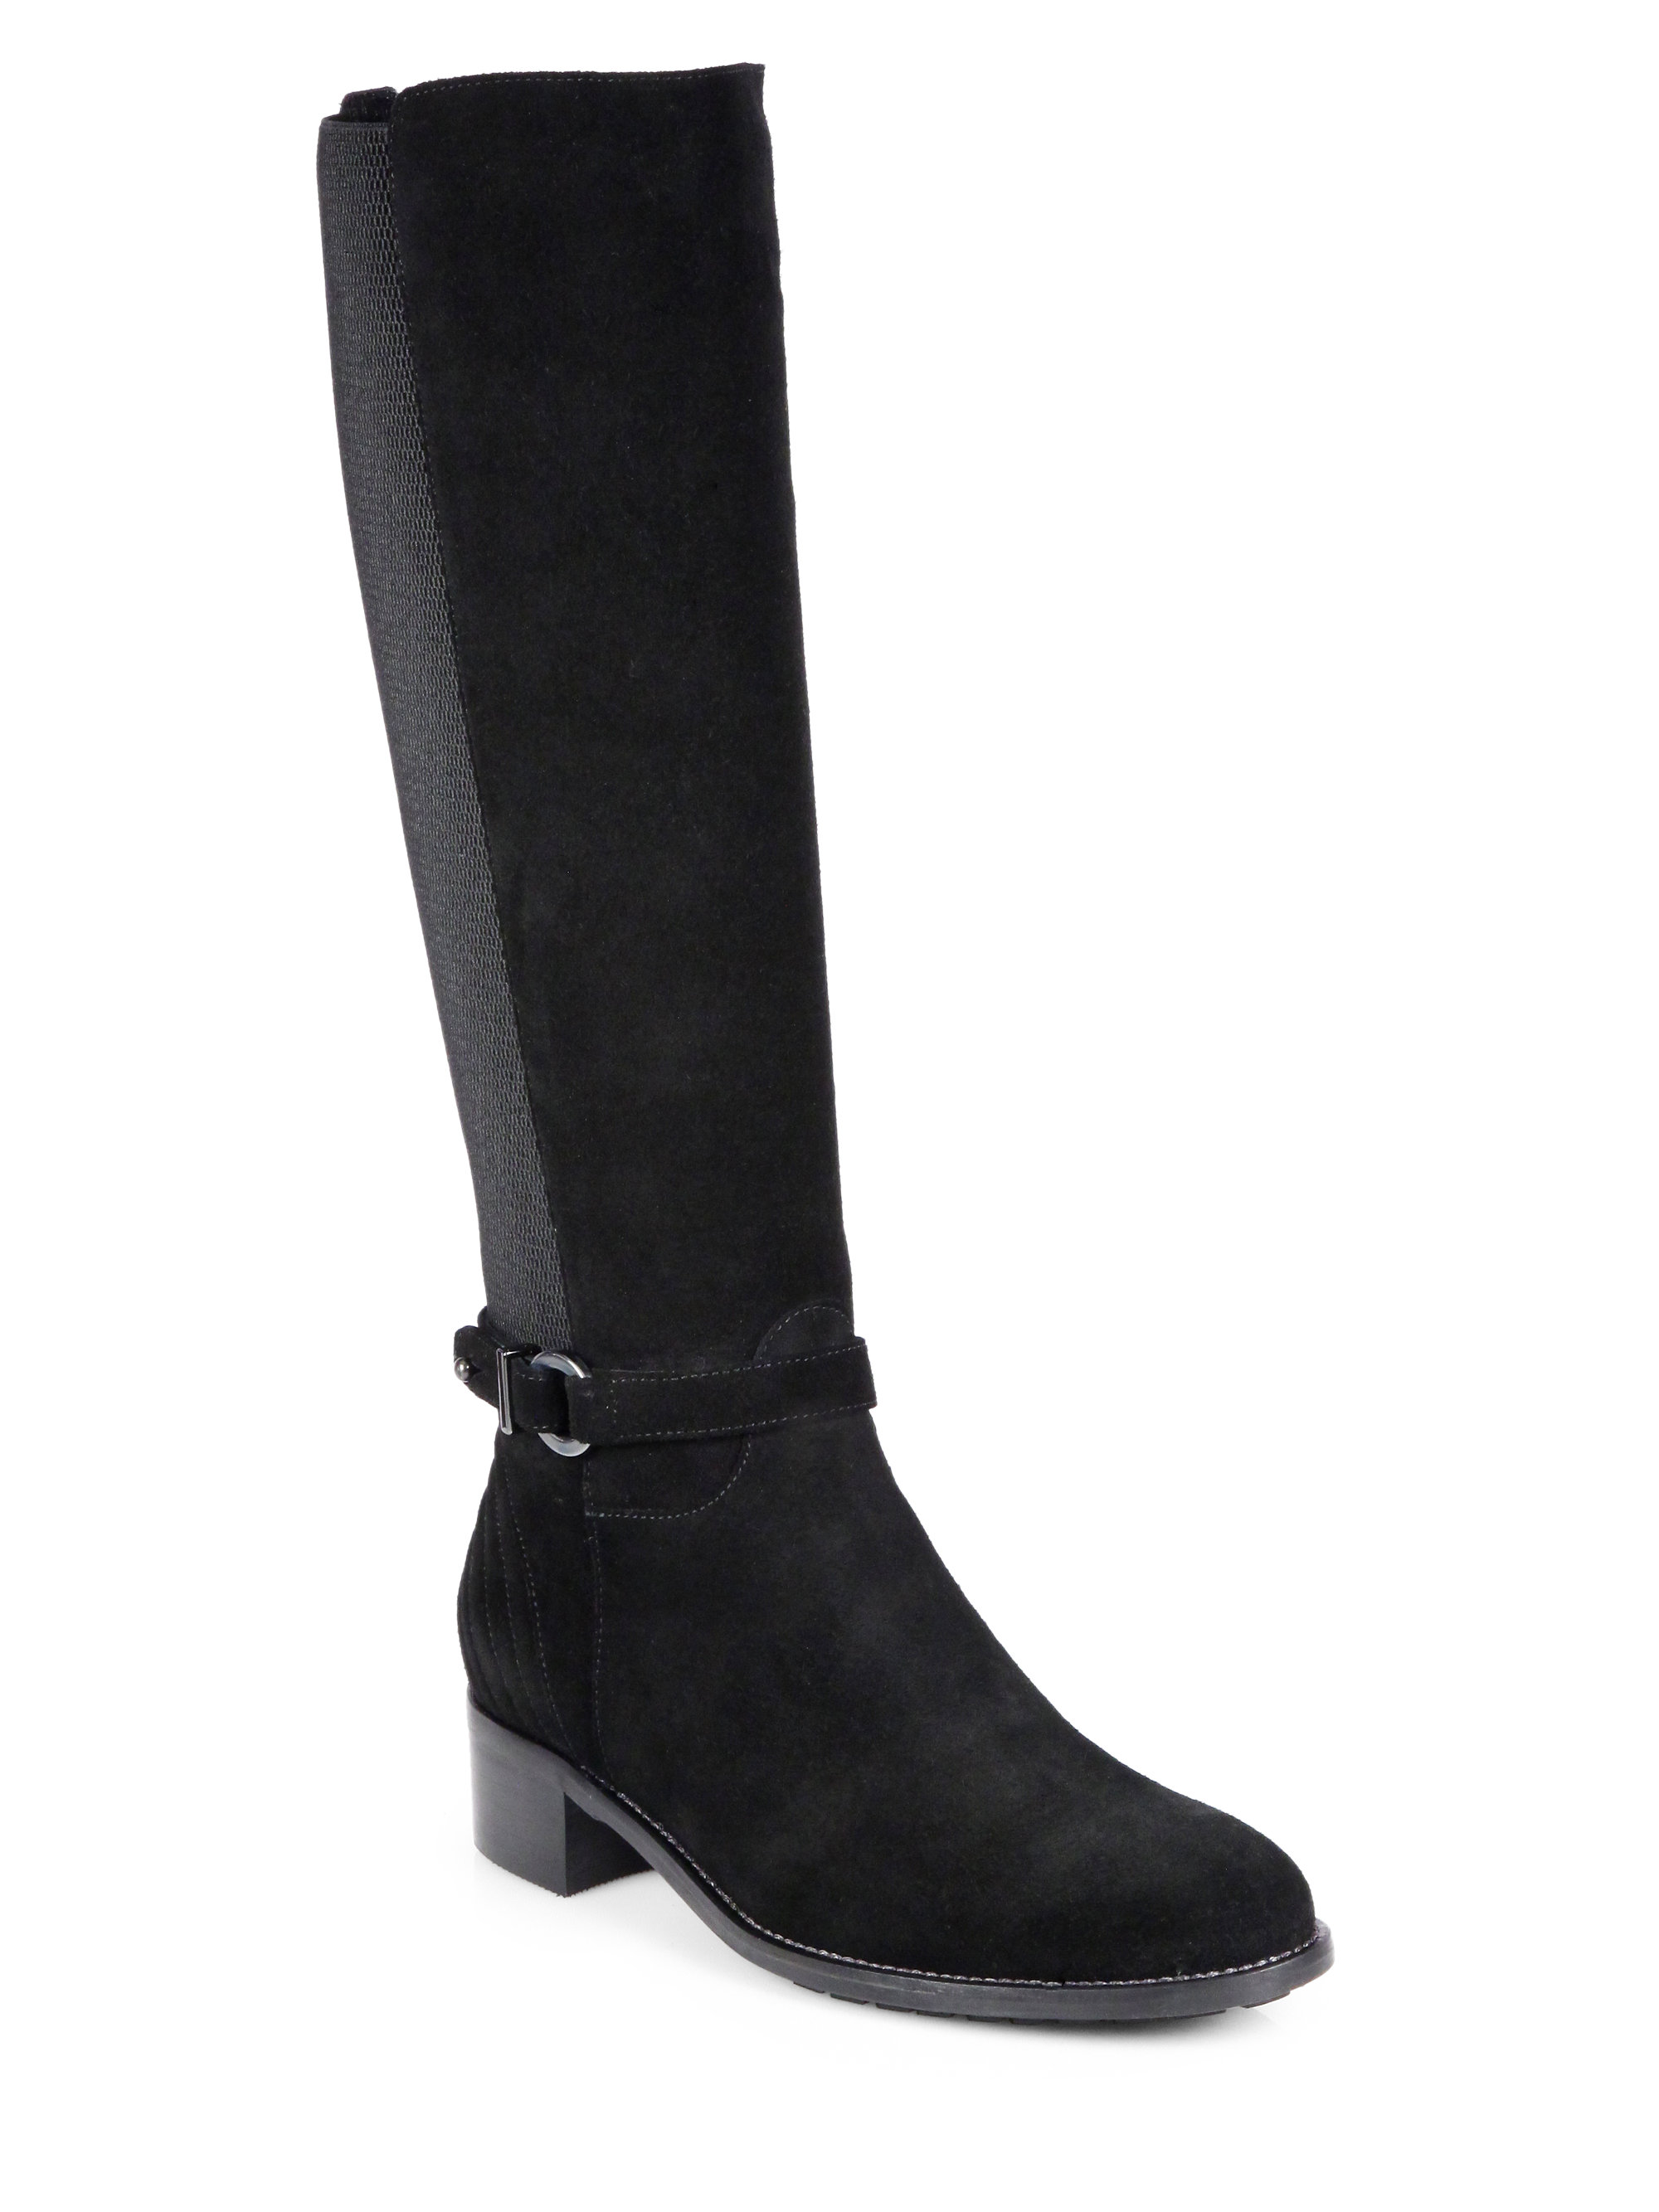 Lyst Aquatalia Orso Suede Tall Boots In Black